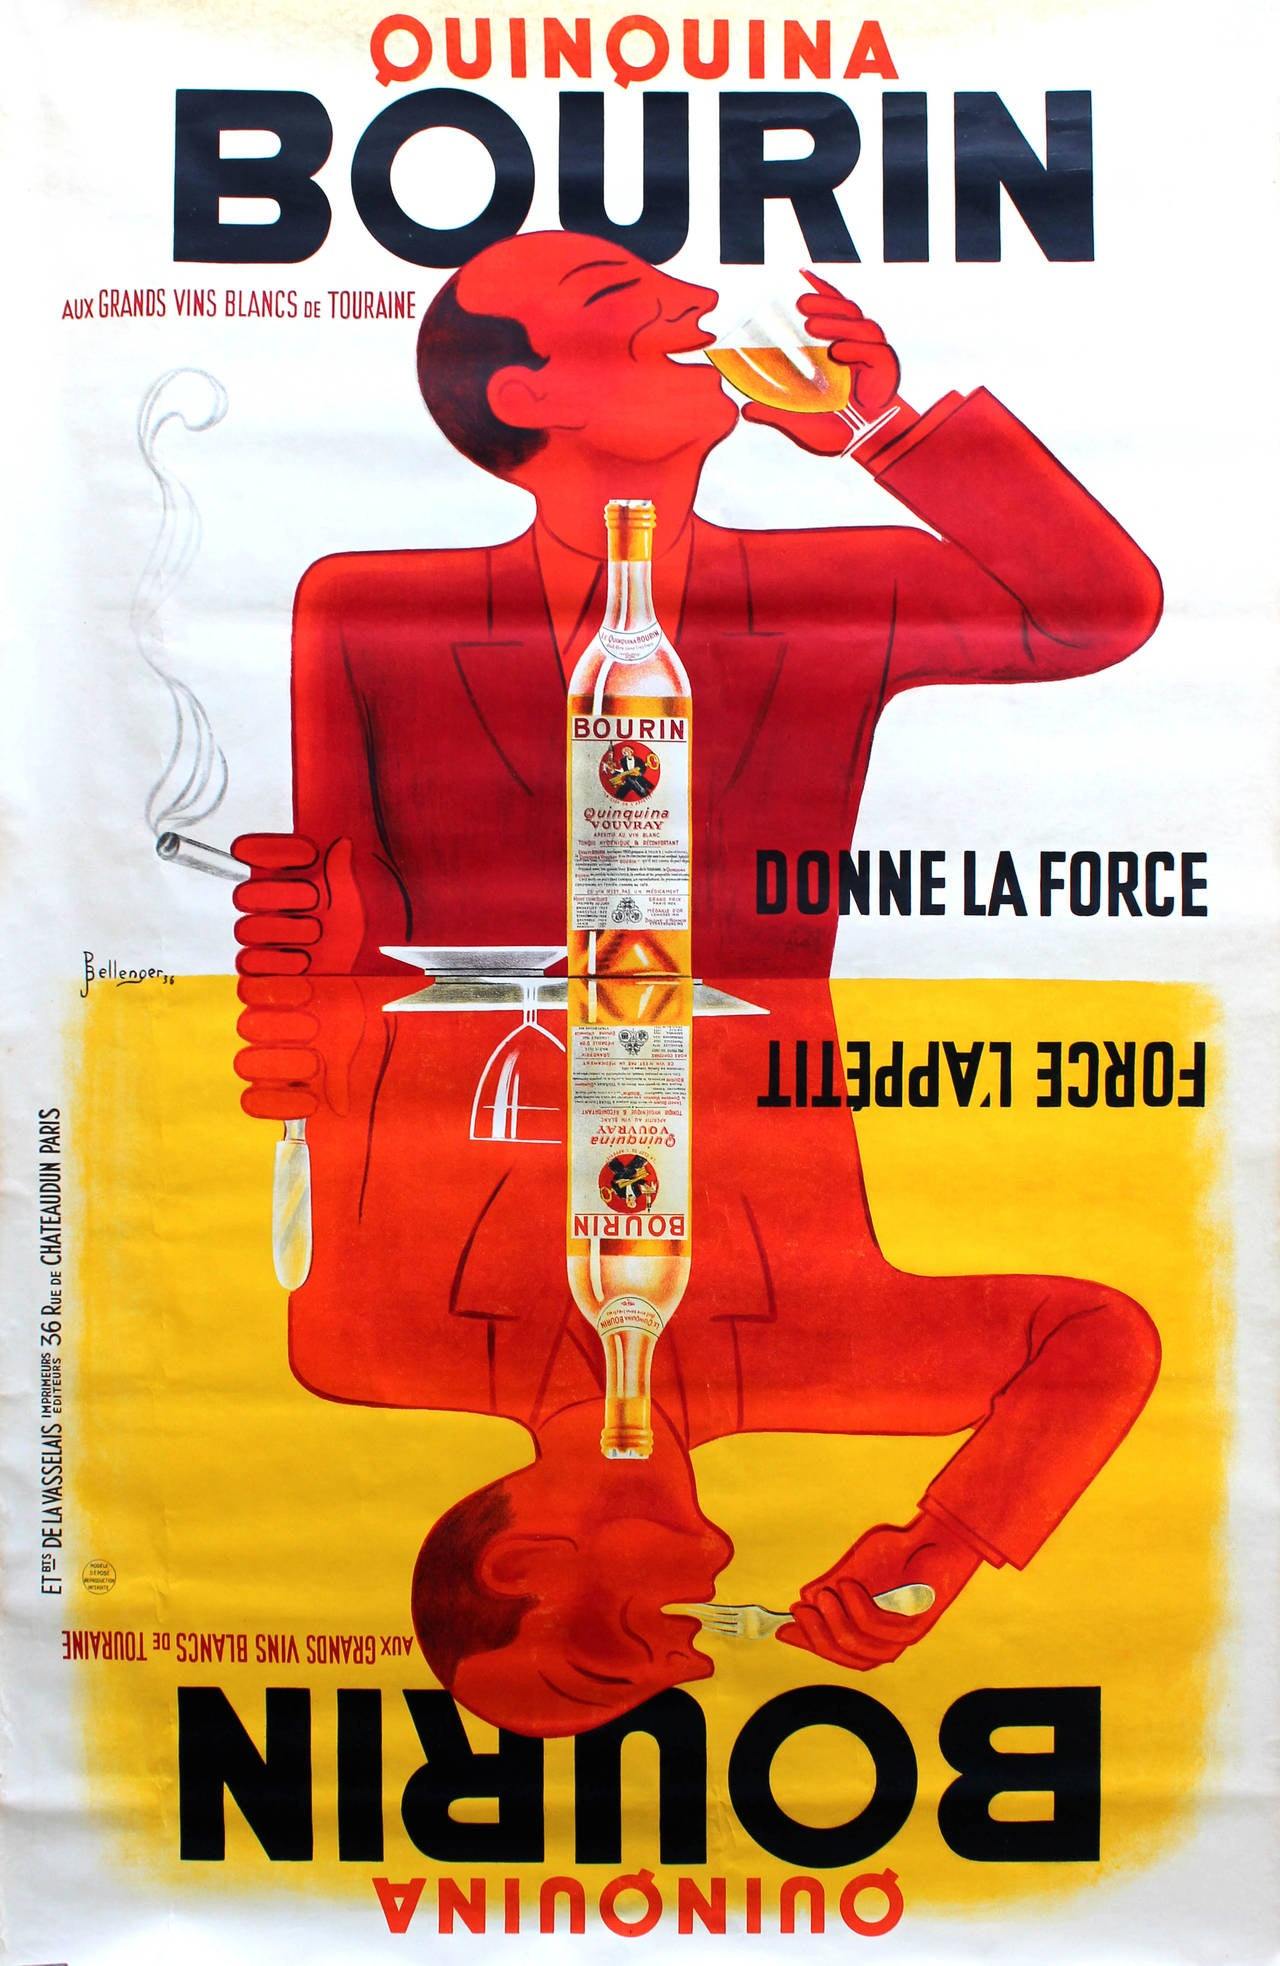 Large Original Vintage Advertising Poster For Quinquina ...